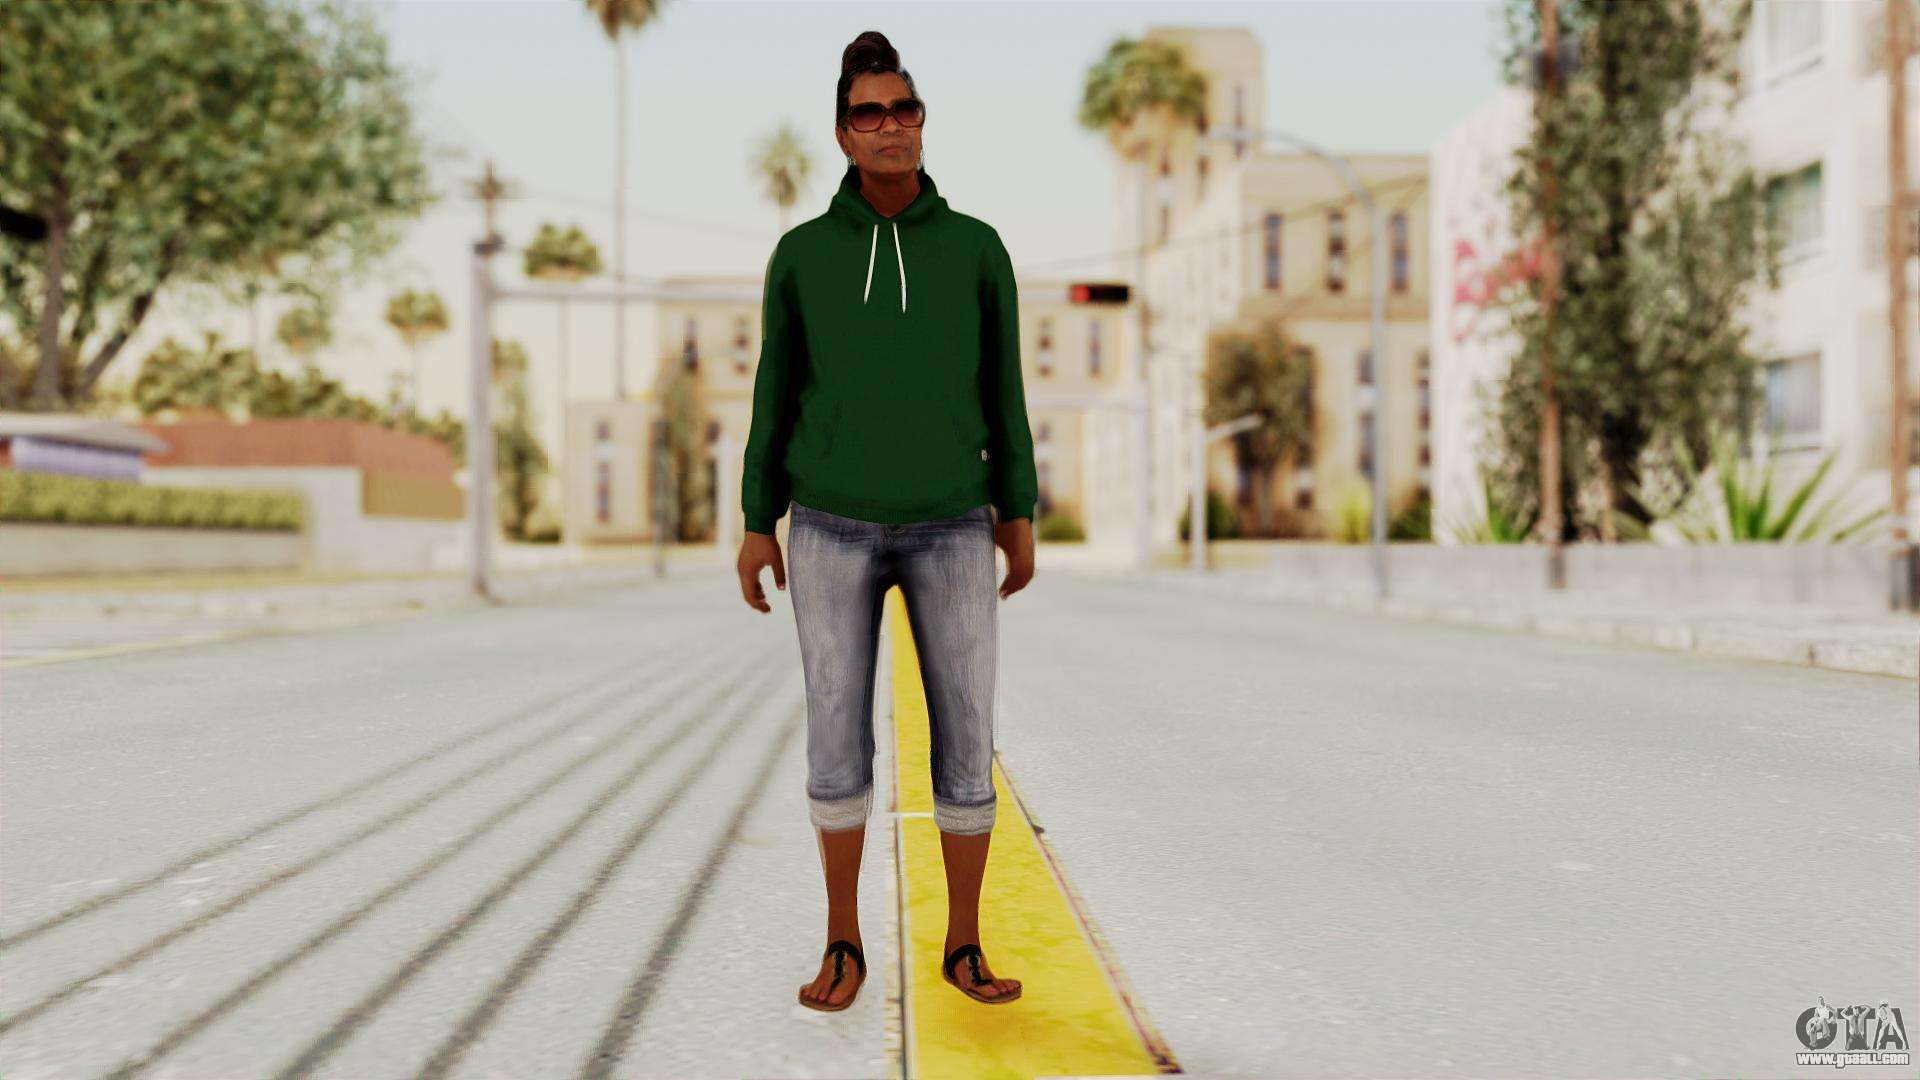 Gta san andreas dating denise